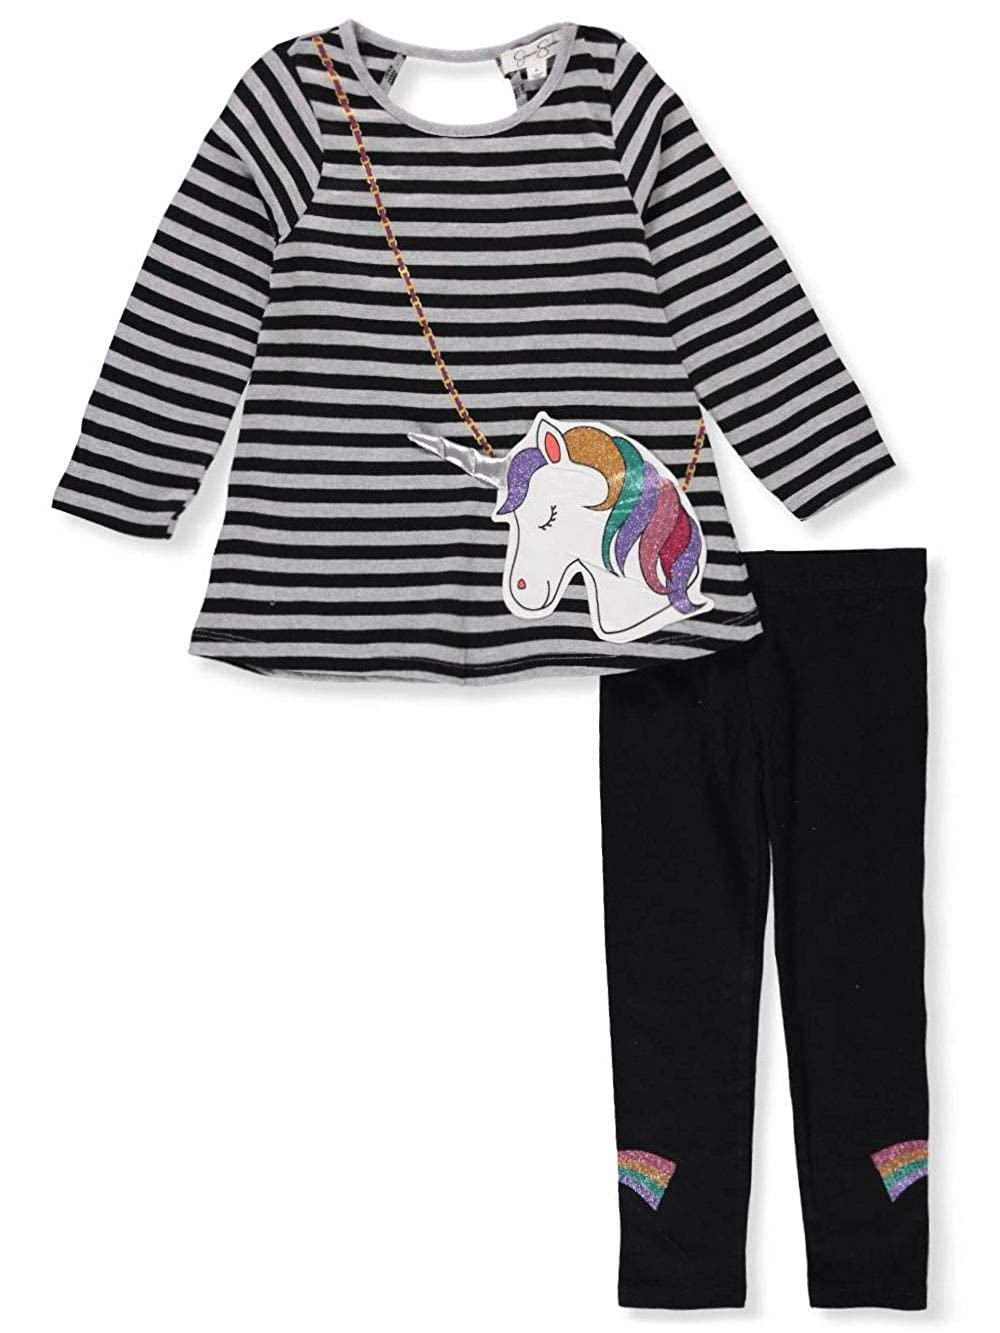 Jessica Simpson Girls' 2-Piece Leggings Set Outfit